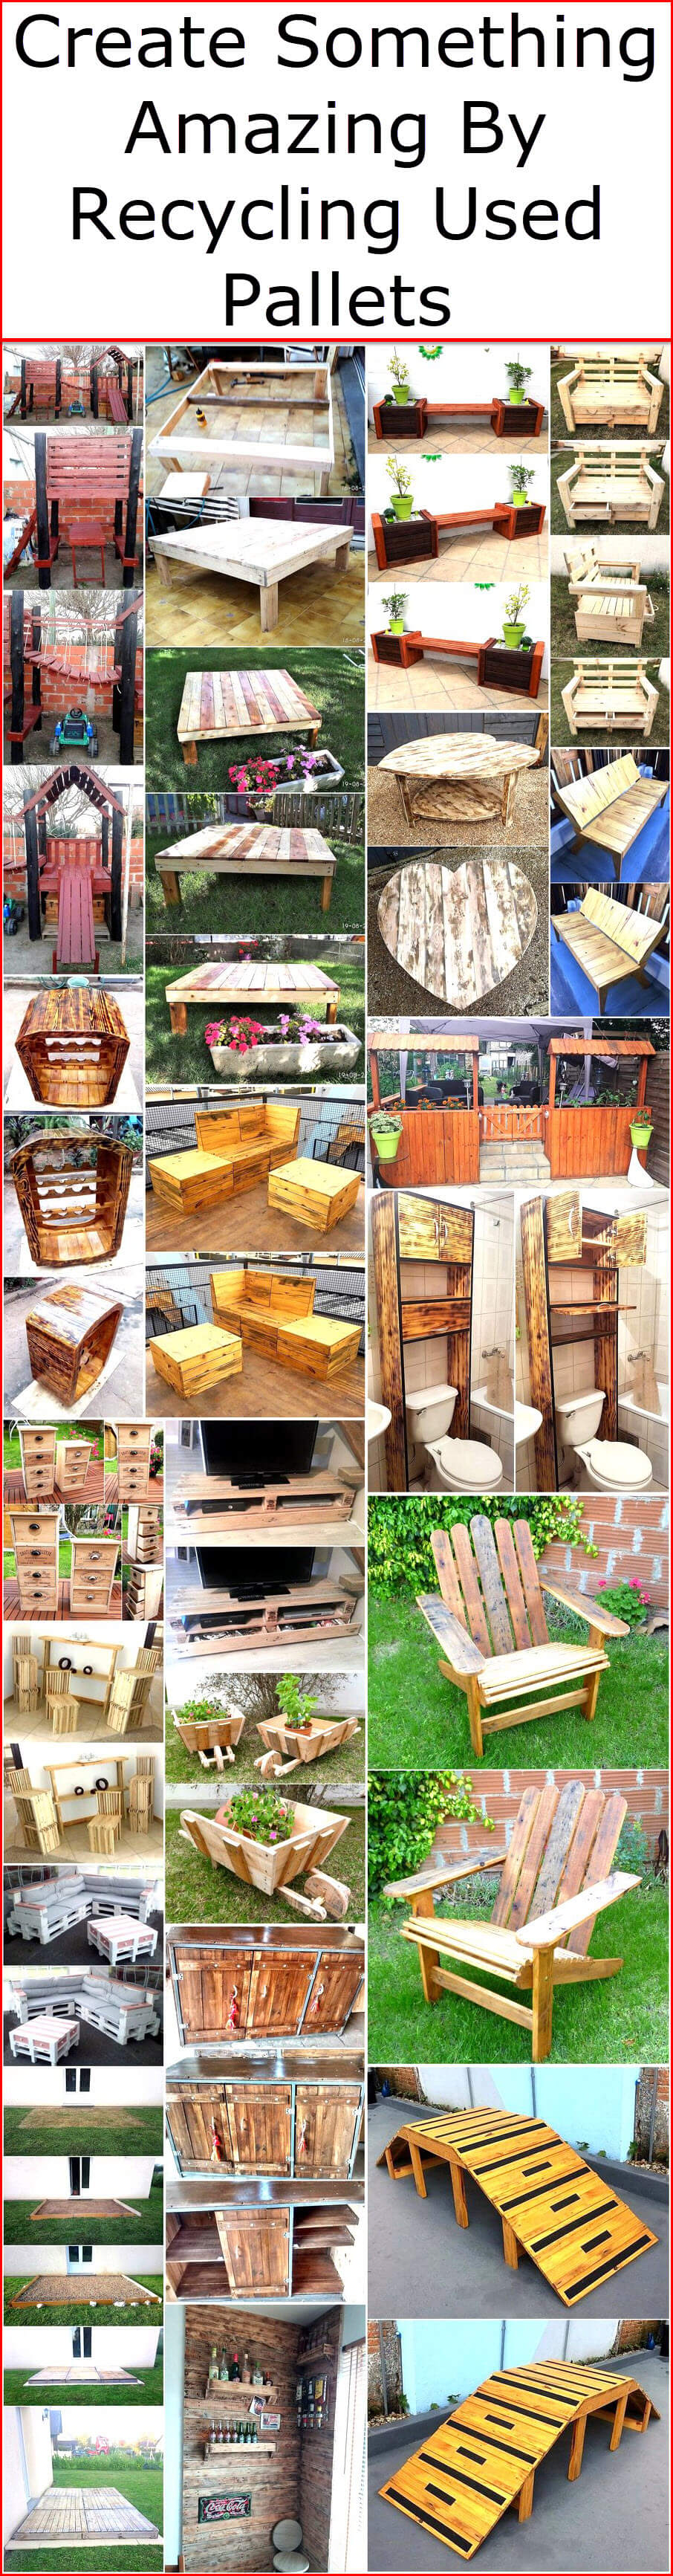 Create Something Amazing By Recycling Used Pallets